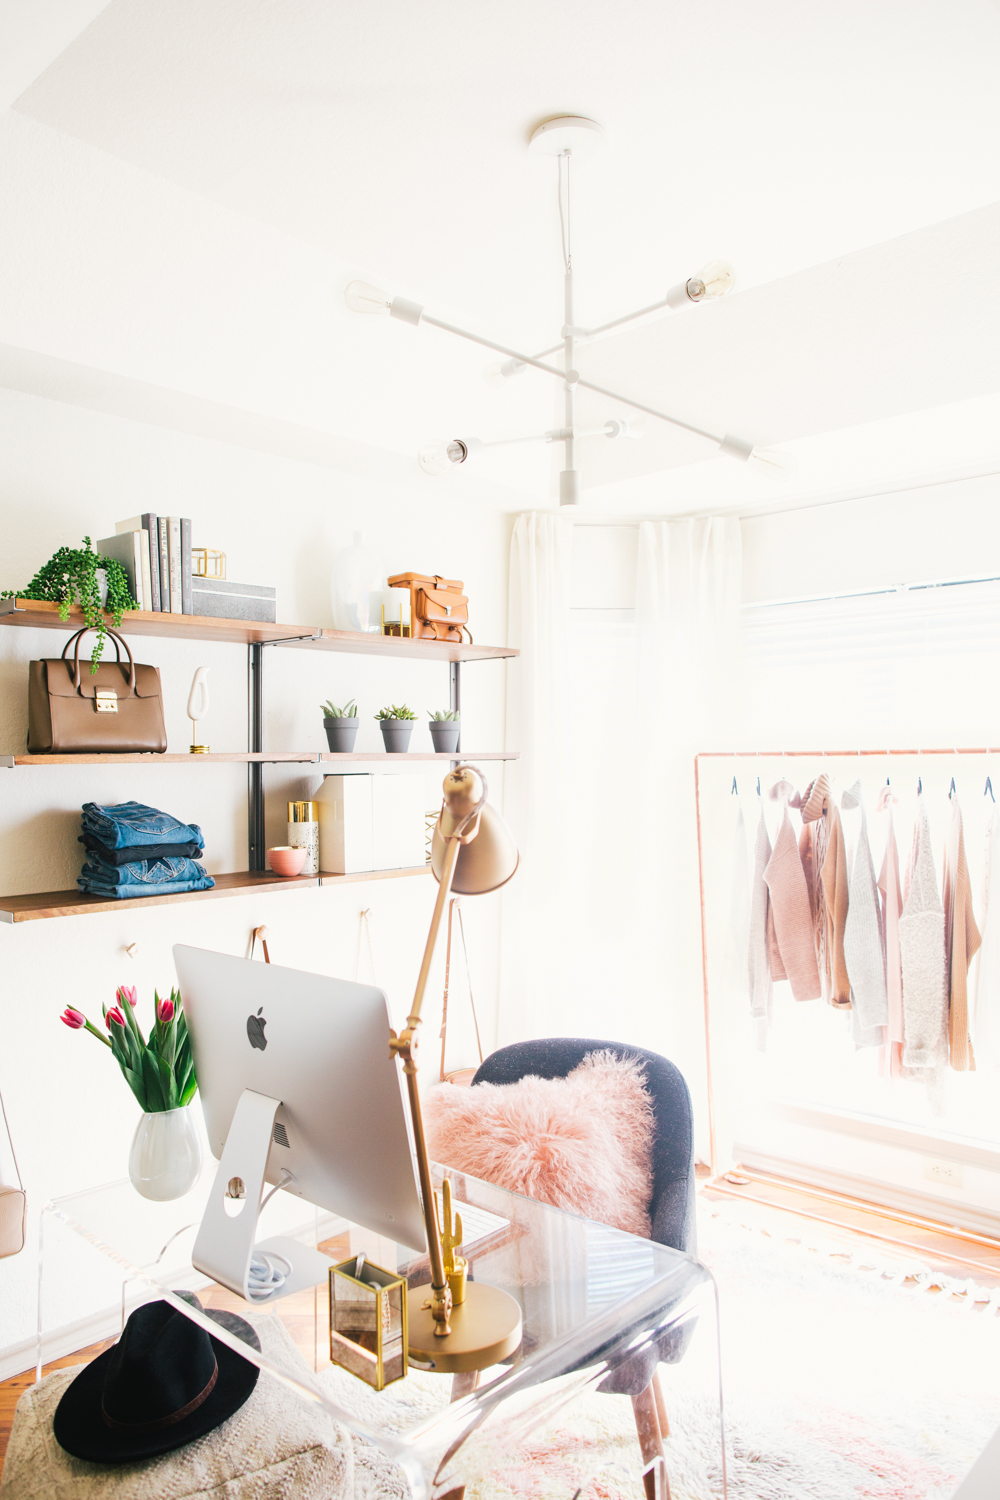 Olivia of Livvyland's Stunning Home Office